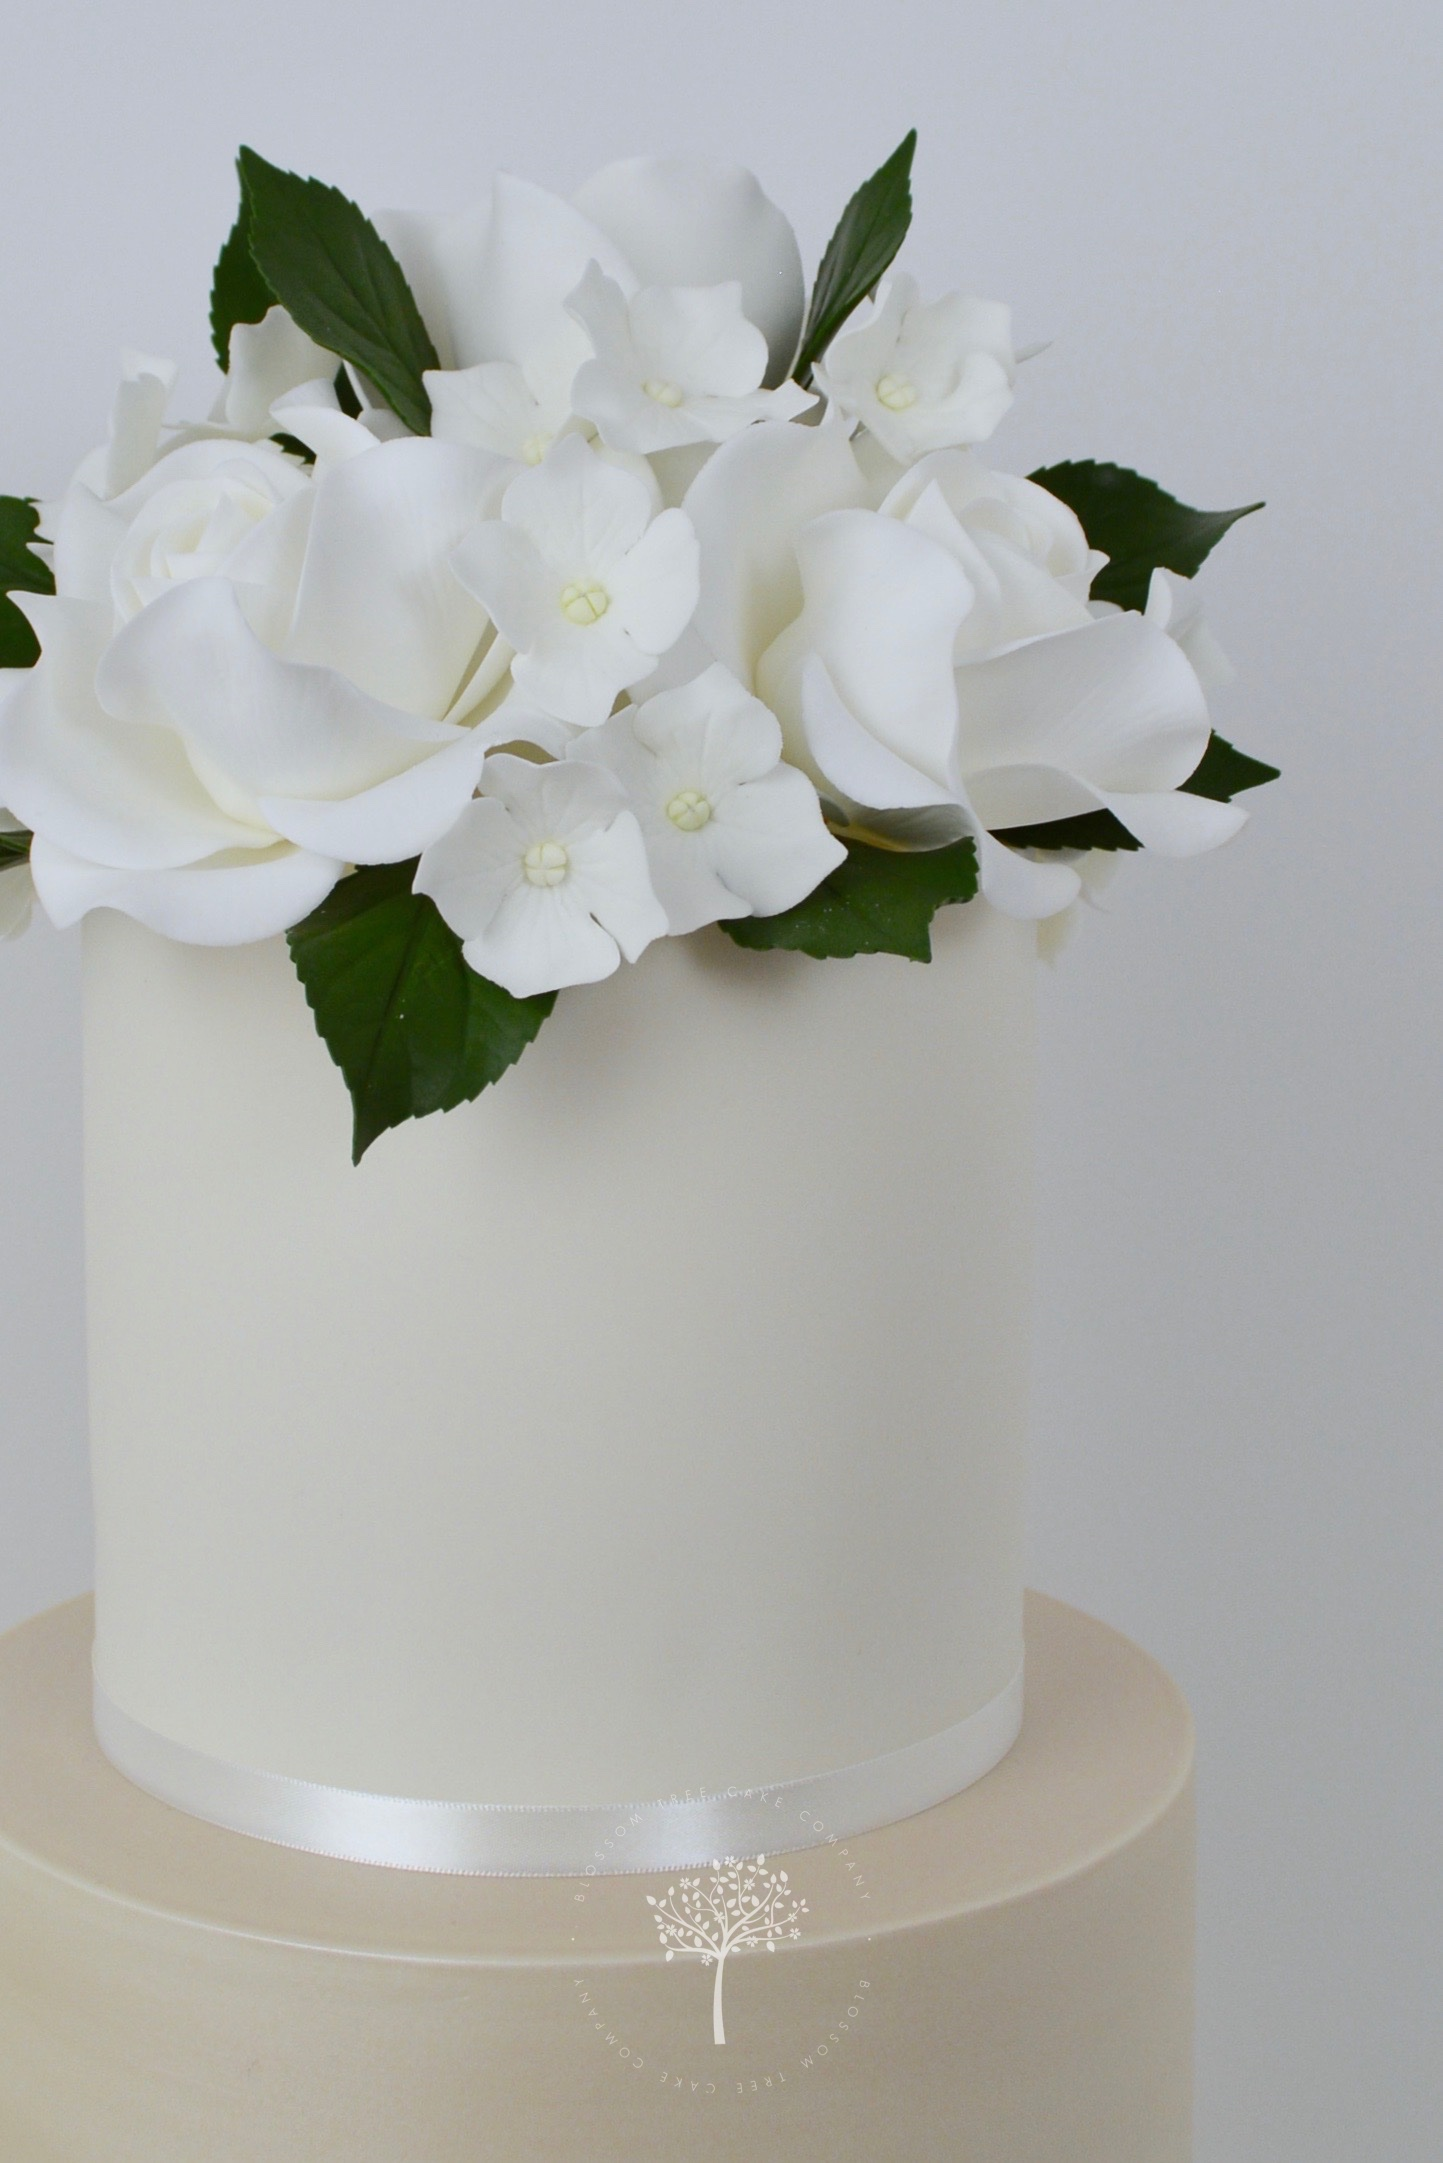 Champagne and White Roses wedding cake by Blossom Tree Cake Company Harrogate North Yorkshire - top sugar roses.jpg